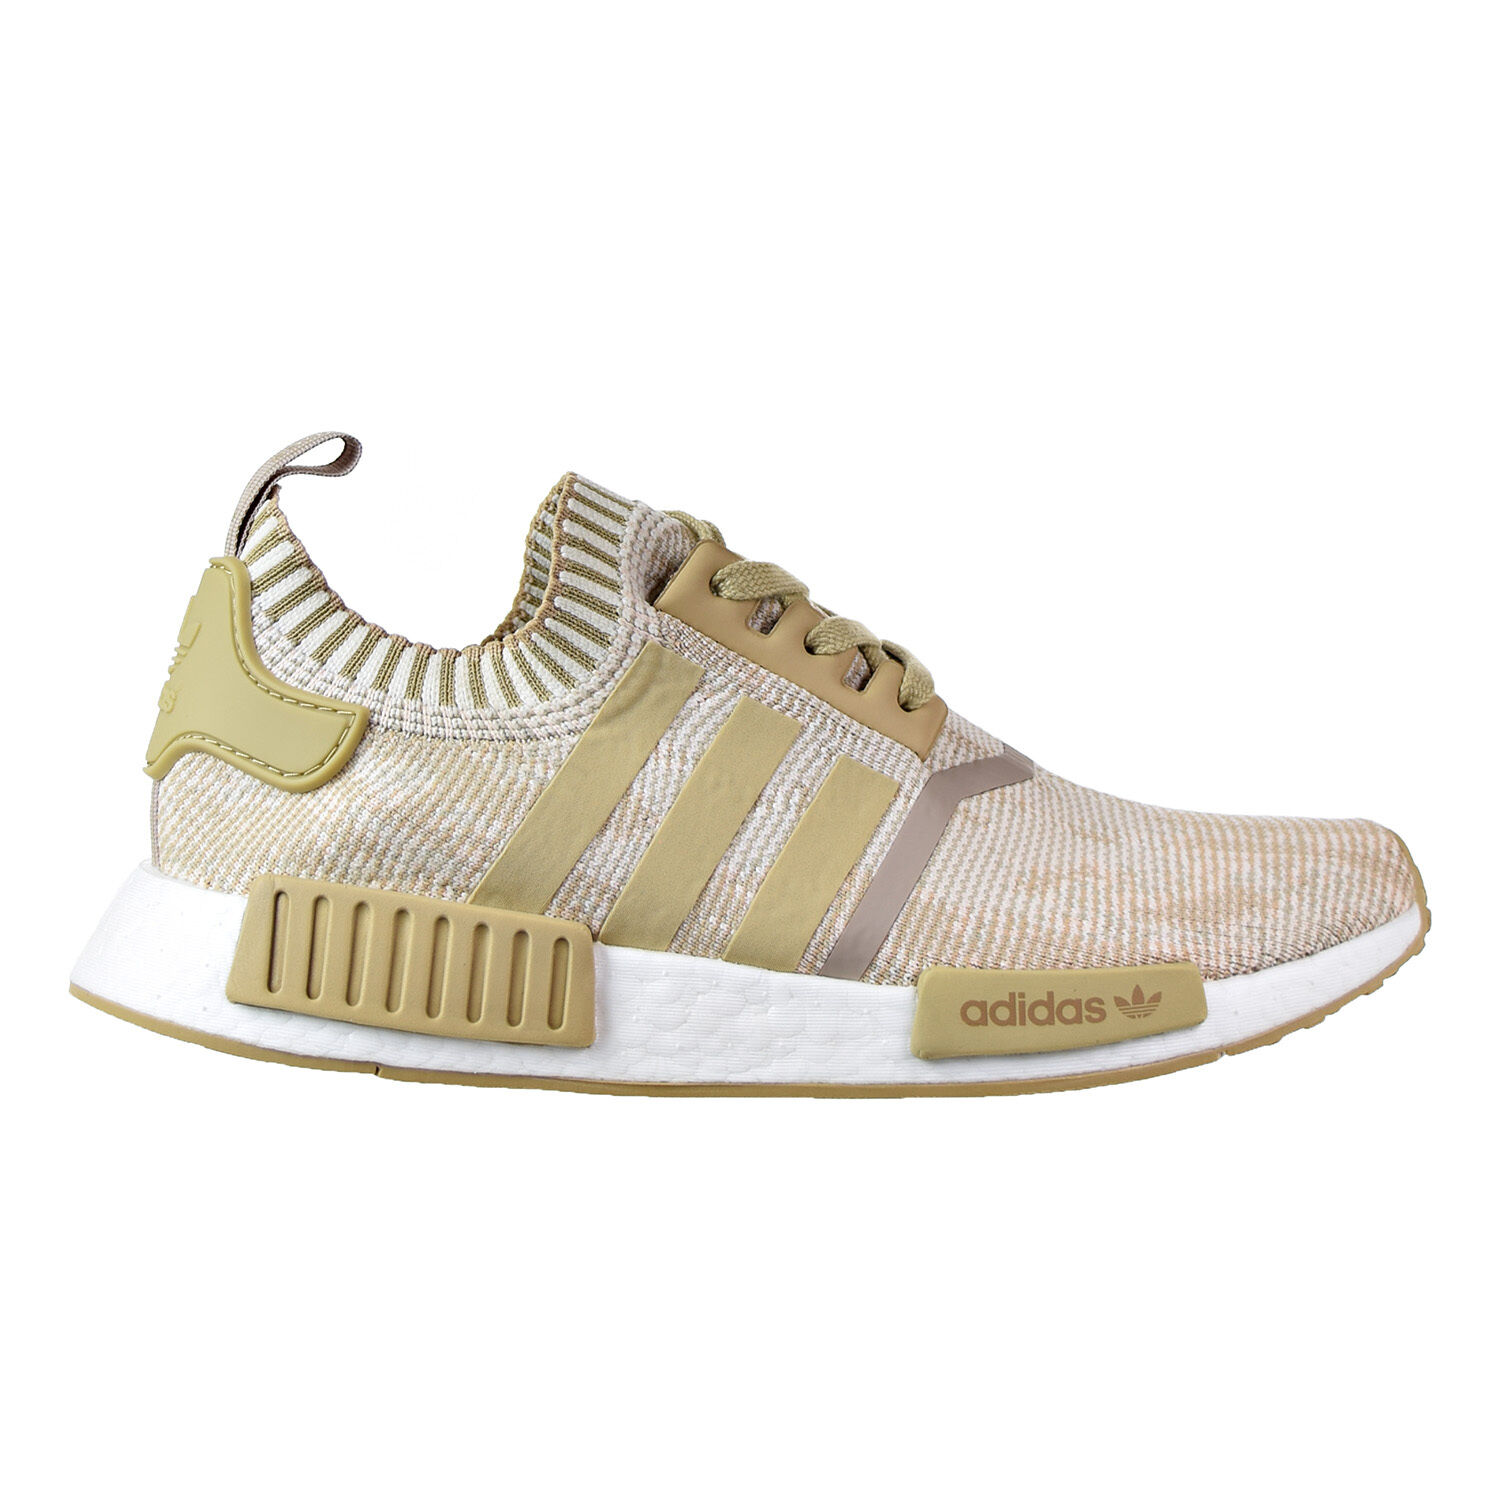 Adidas NMD_R1 PK Men's shoes Linen Khaki Linen Khaki Off Off Off White by1912 8ad4ed